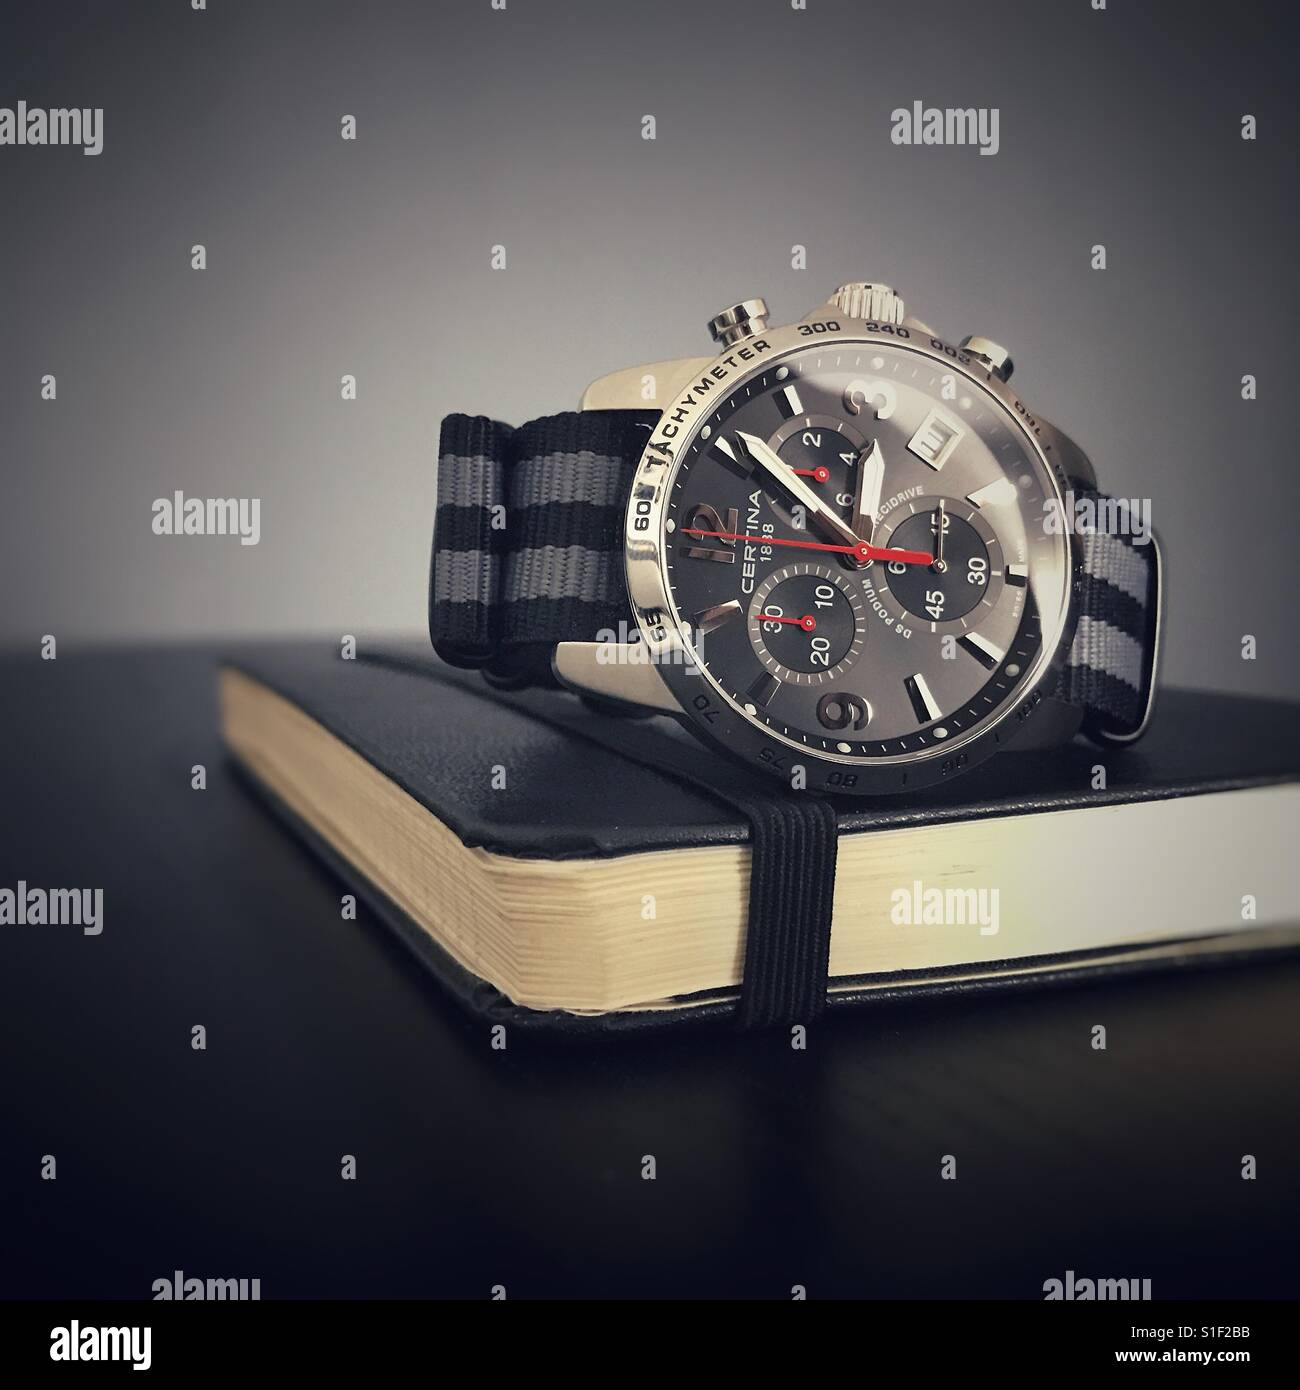 Sports wristwatch on a notebook - Stock Image